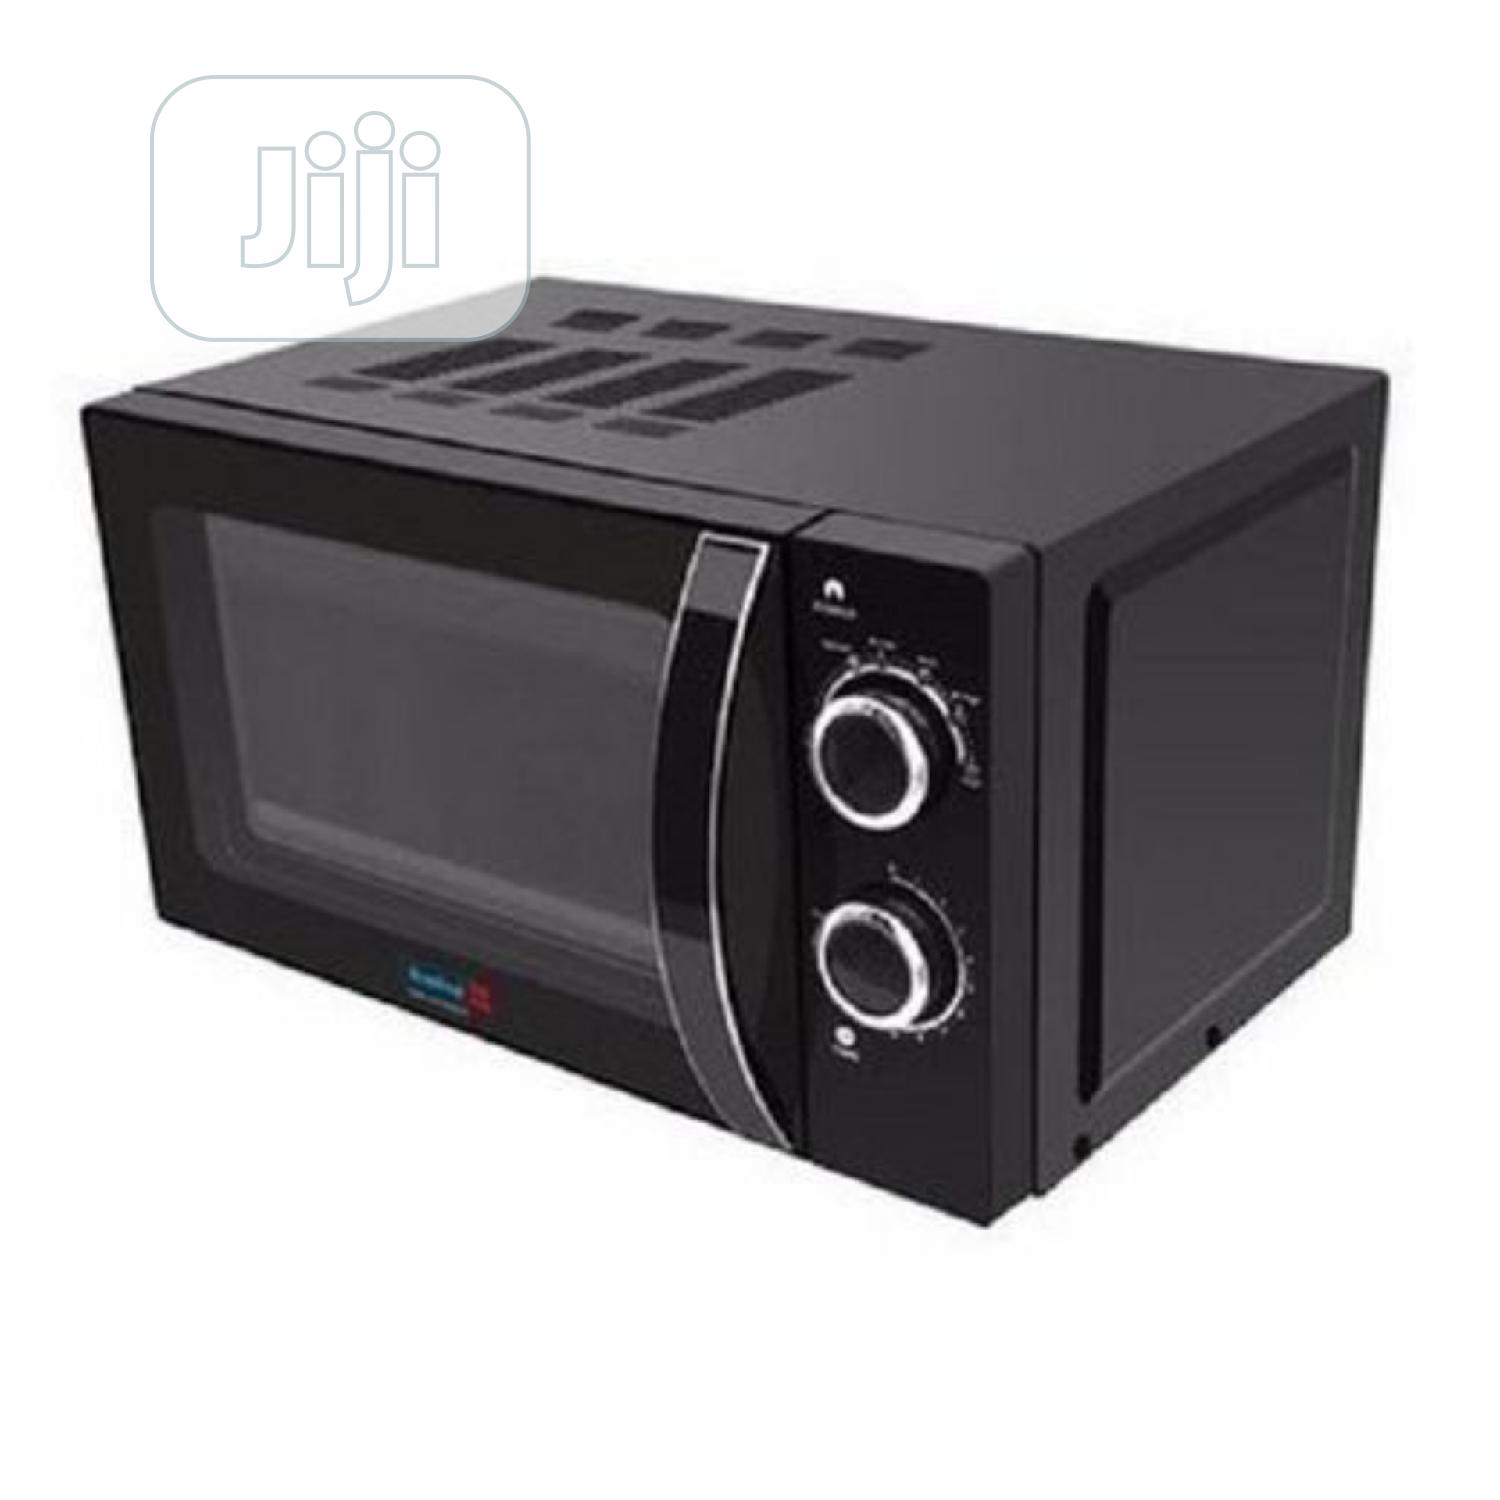 Scanfrost Microwave Oven 20L